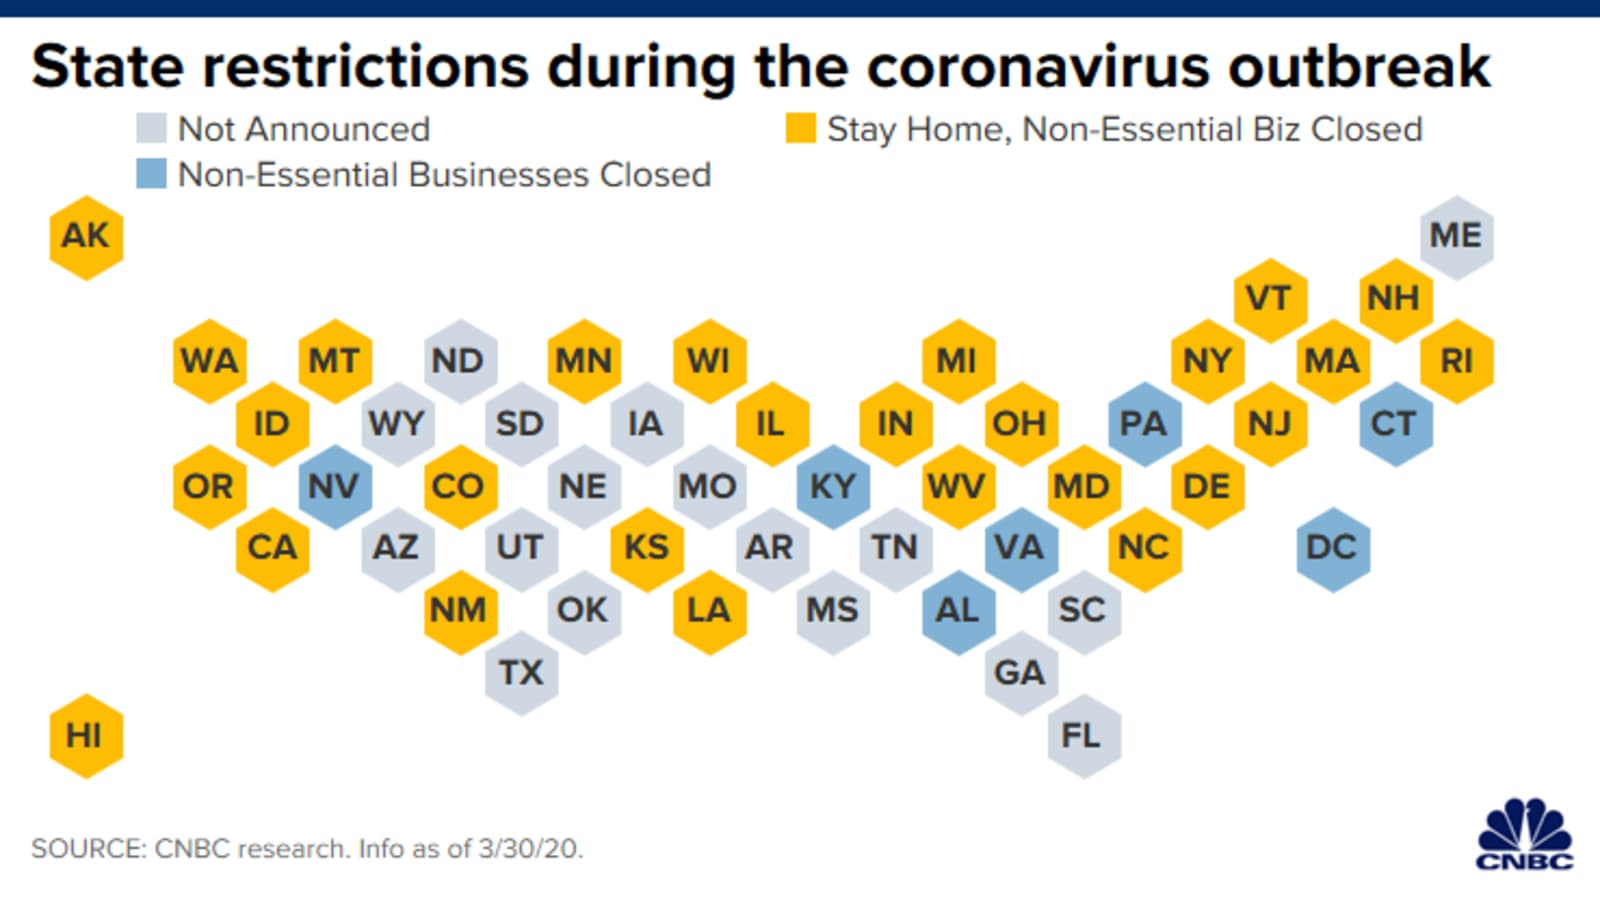 Georgia To Issue Shelter In Place Order Amid Coronavirus Outbreak